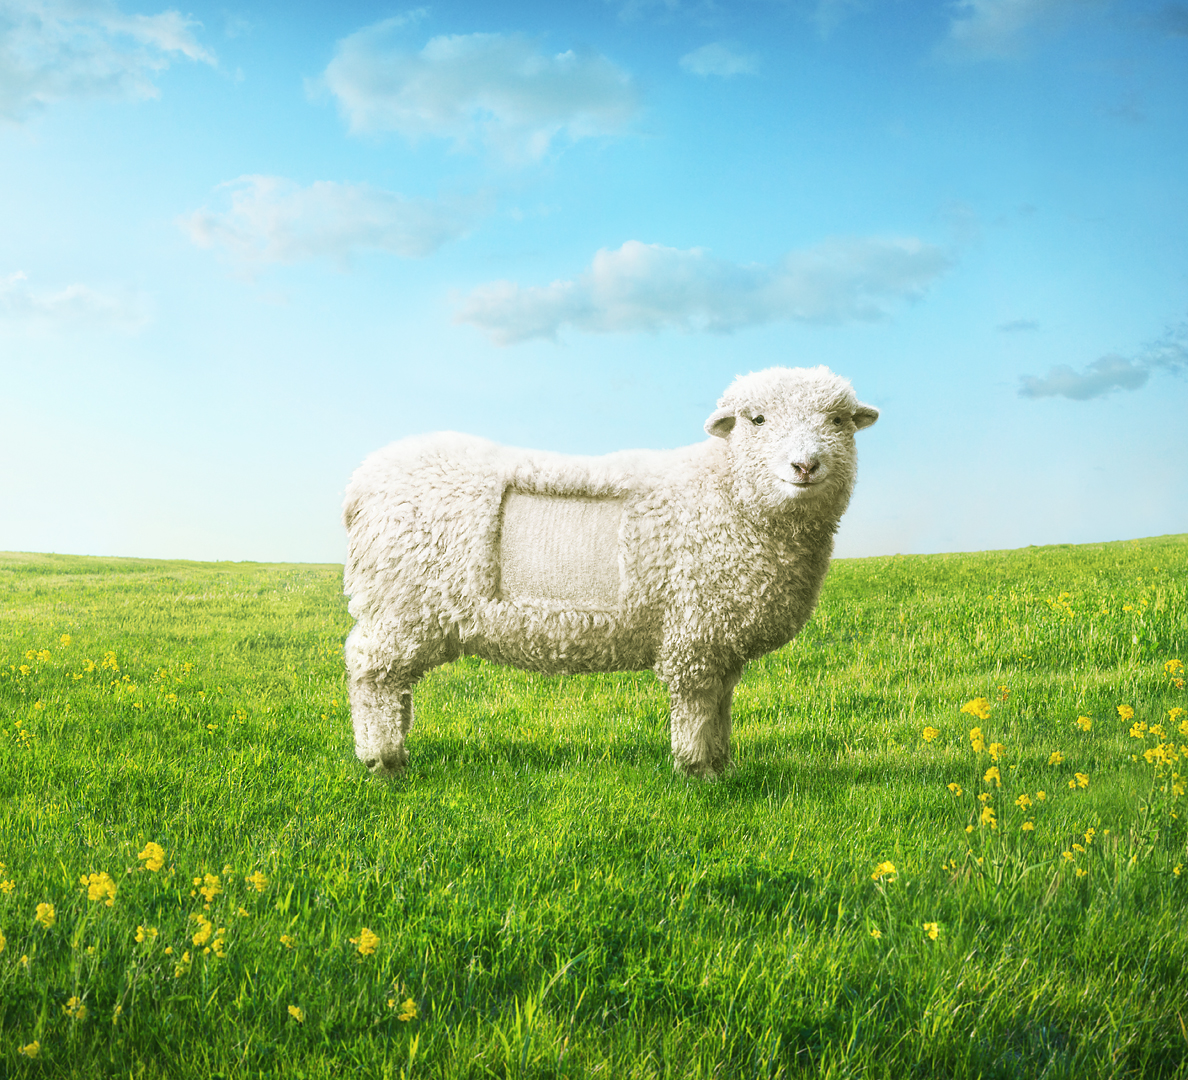 Shaw_Sheep_1080